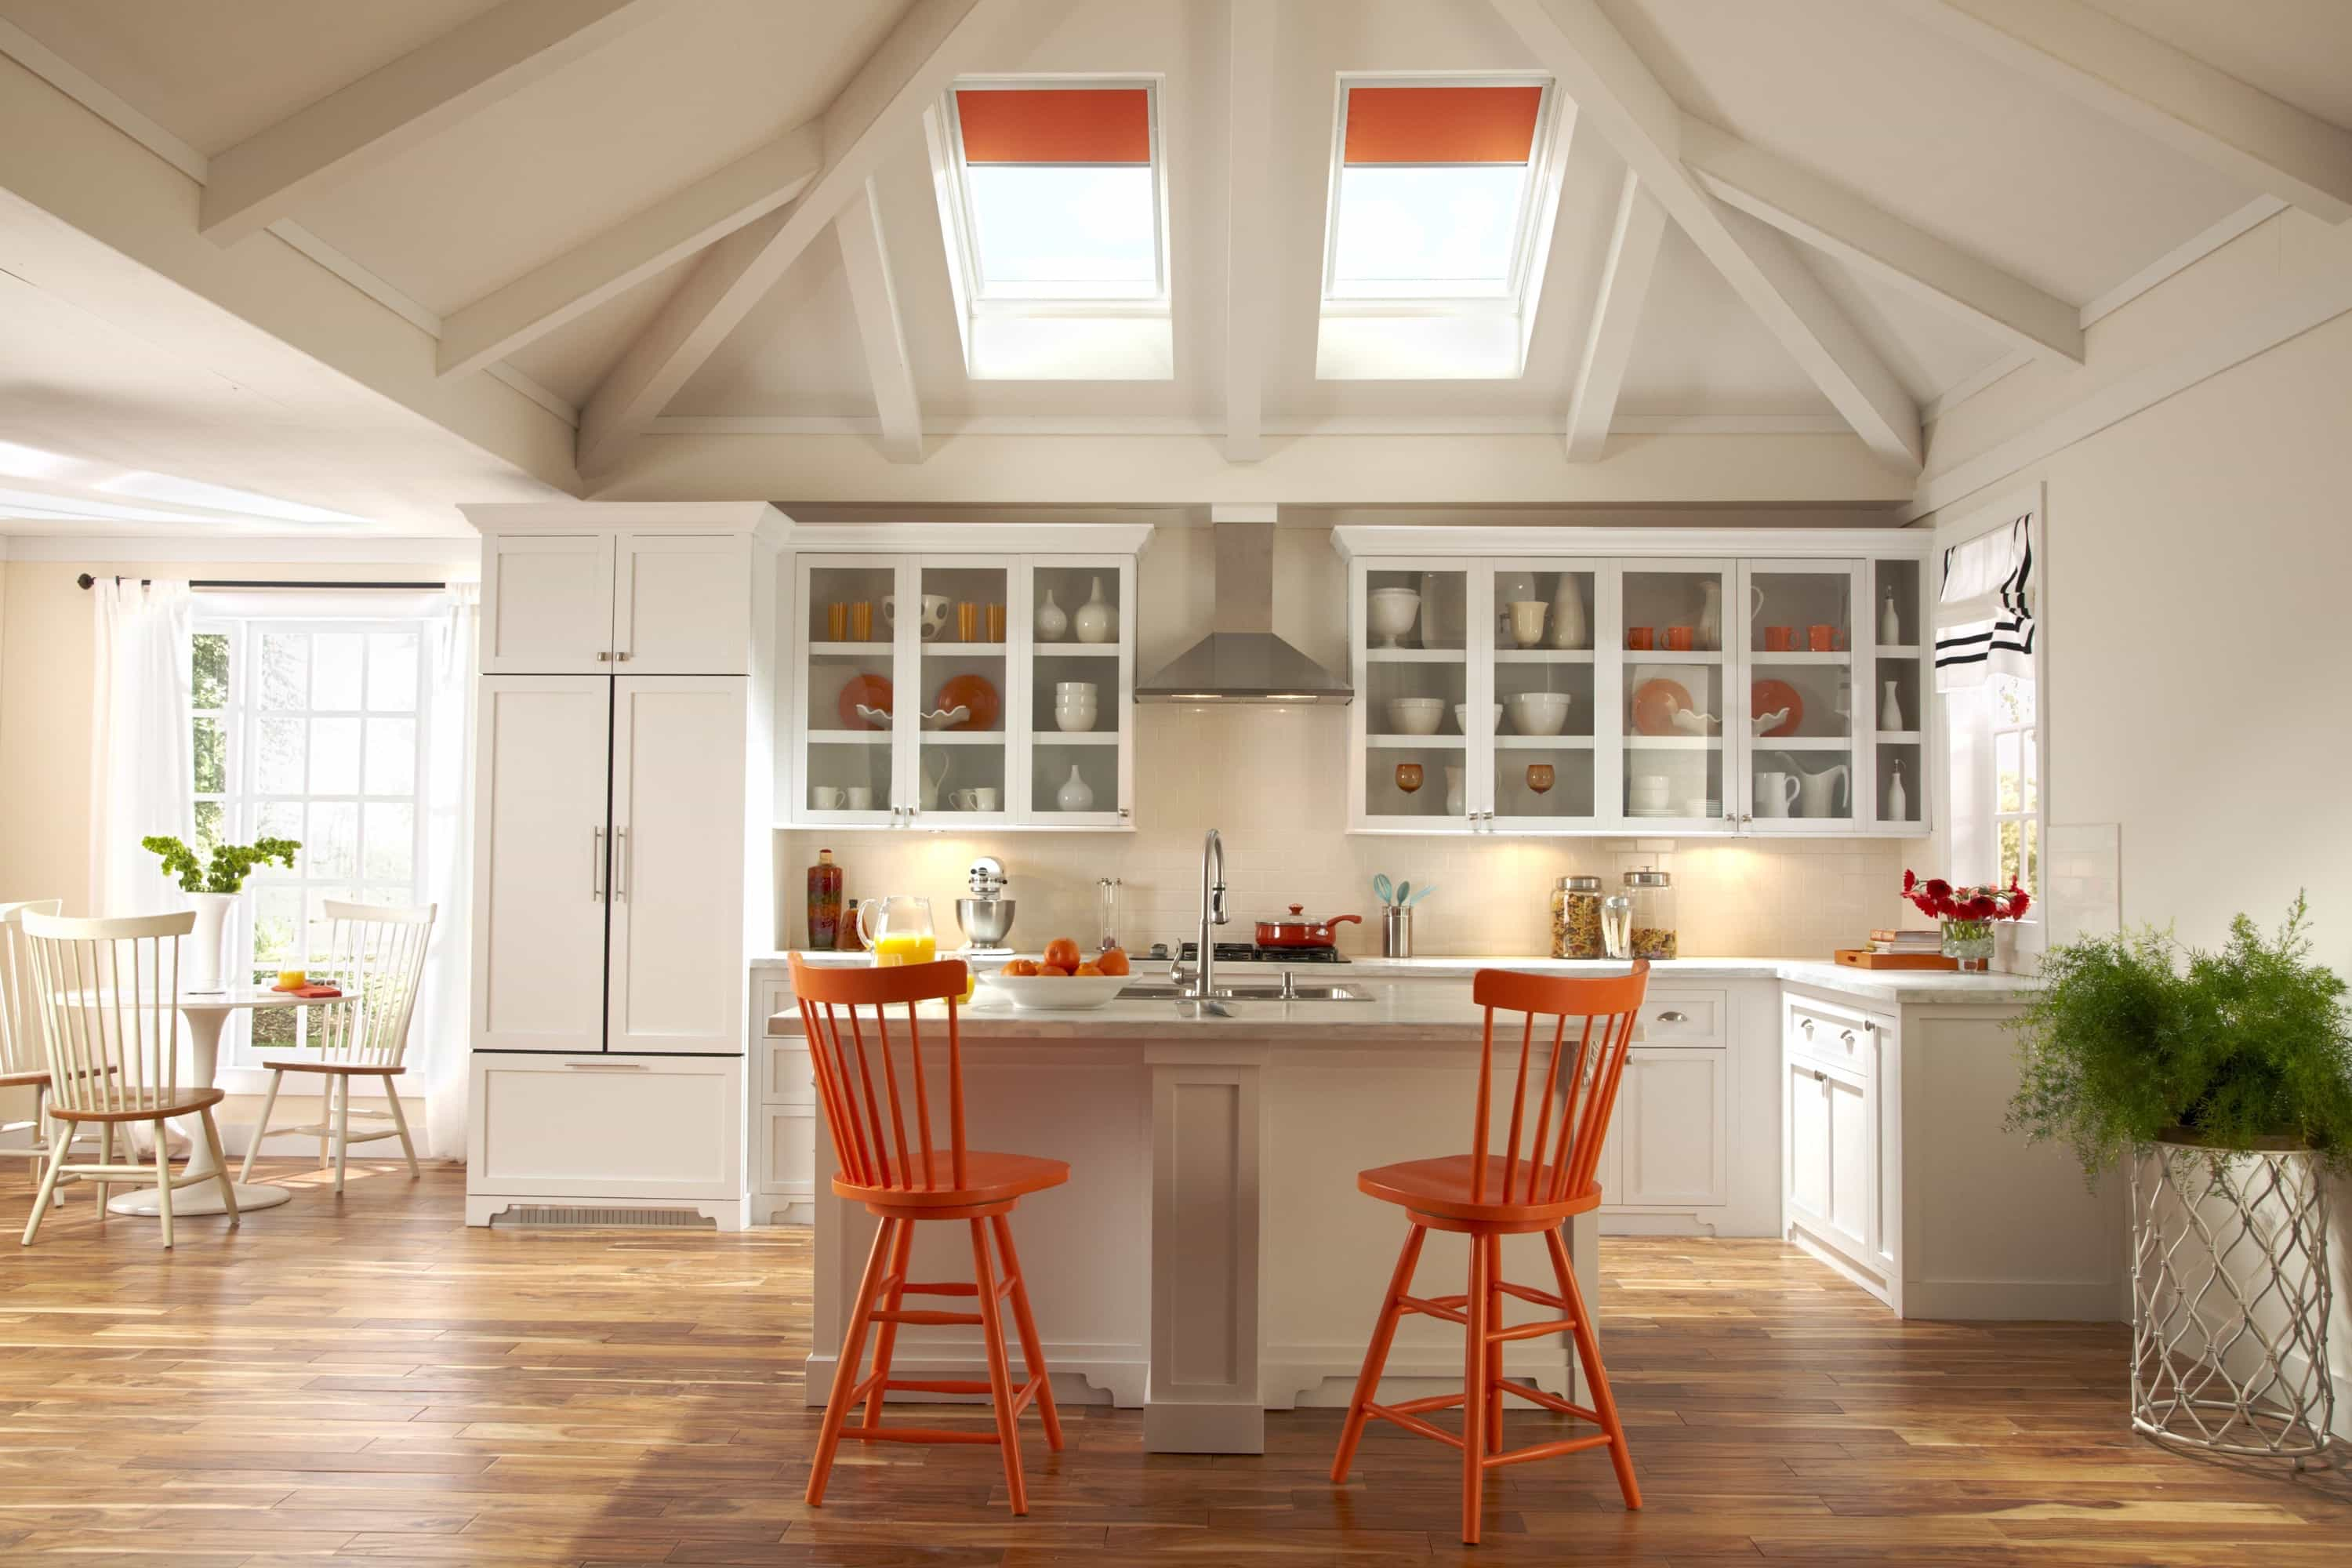 Modern Vertical Blinds For Kitchen Skylights (View 18 of 25)